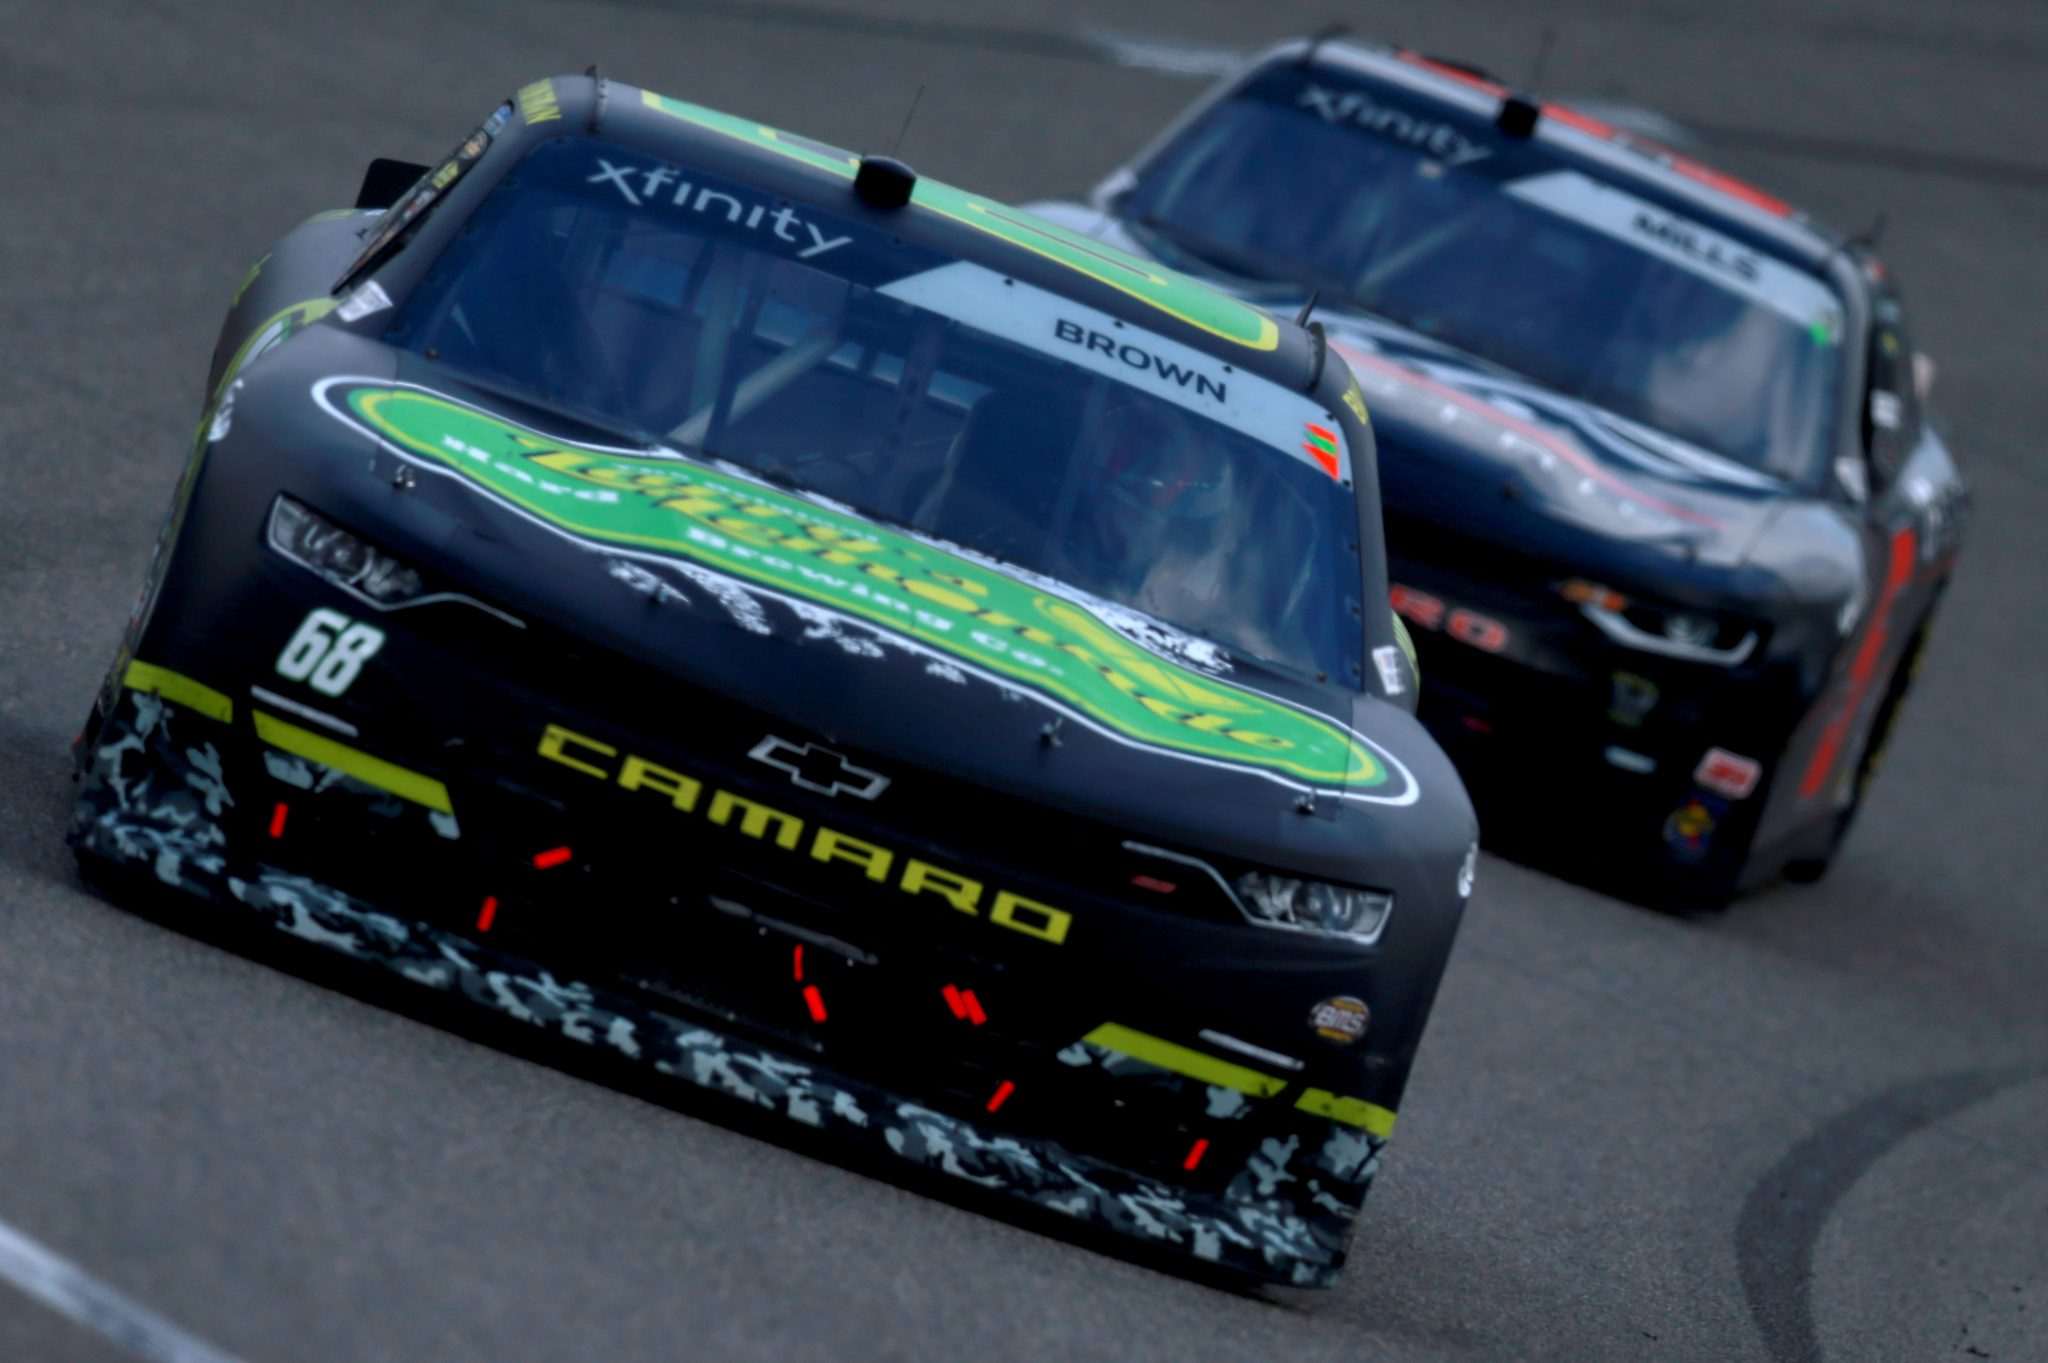 RICHMOND, VIRGINIA - SEPTEMBER 12: Brandon Brown, driver of the #68 Original Larry's Hard Lemonade Chevrolet, drives during the NASCAR Xfinity Series Virginia is for Racing Lovers 250 at Richmond Raceway on September 12, 2020 in Richmond, Virginia. (Photo by Sean Gardner/Getty Images) | Getty Images